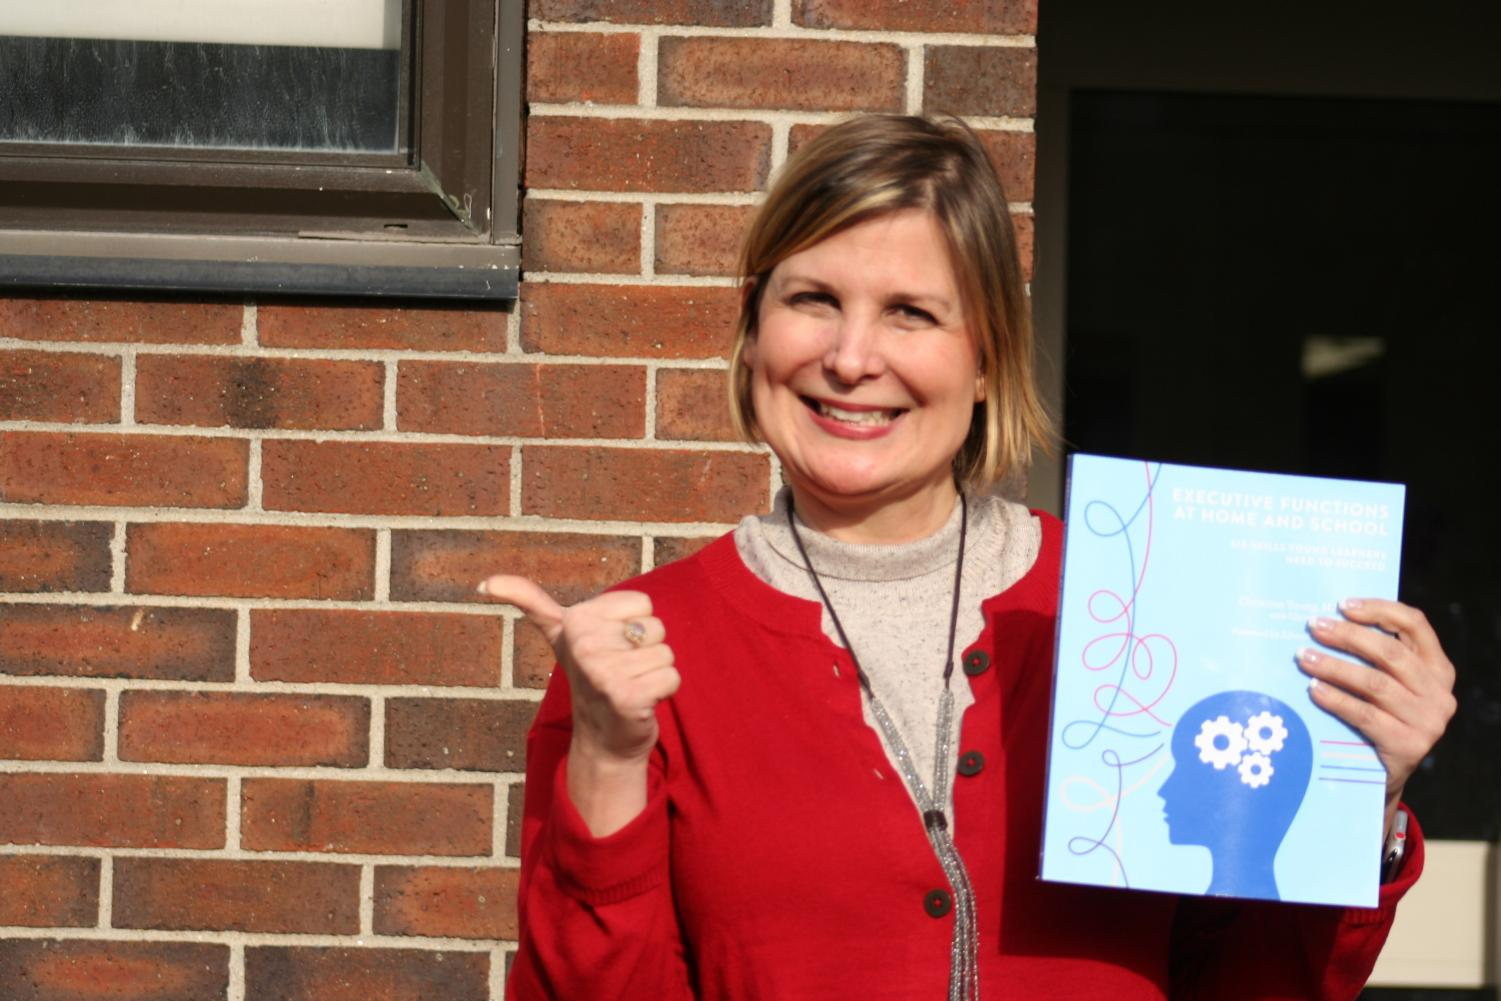 EXAMINING EXECUTIVE FUNCTION: Nichols poses with recently published book.